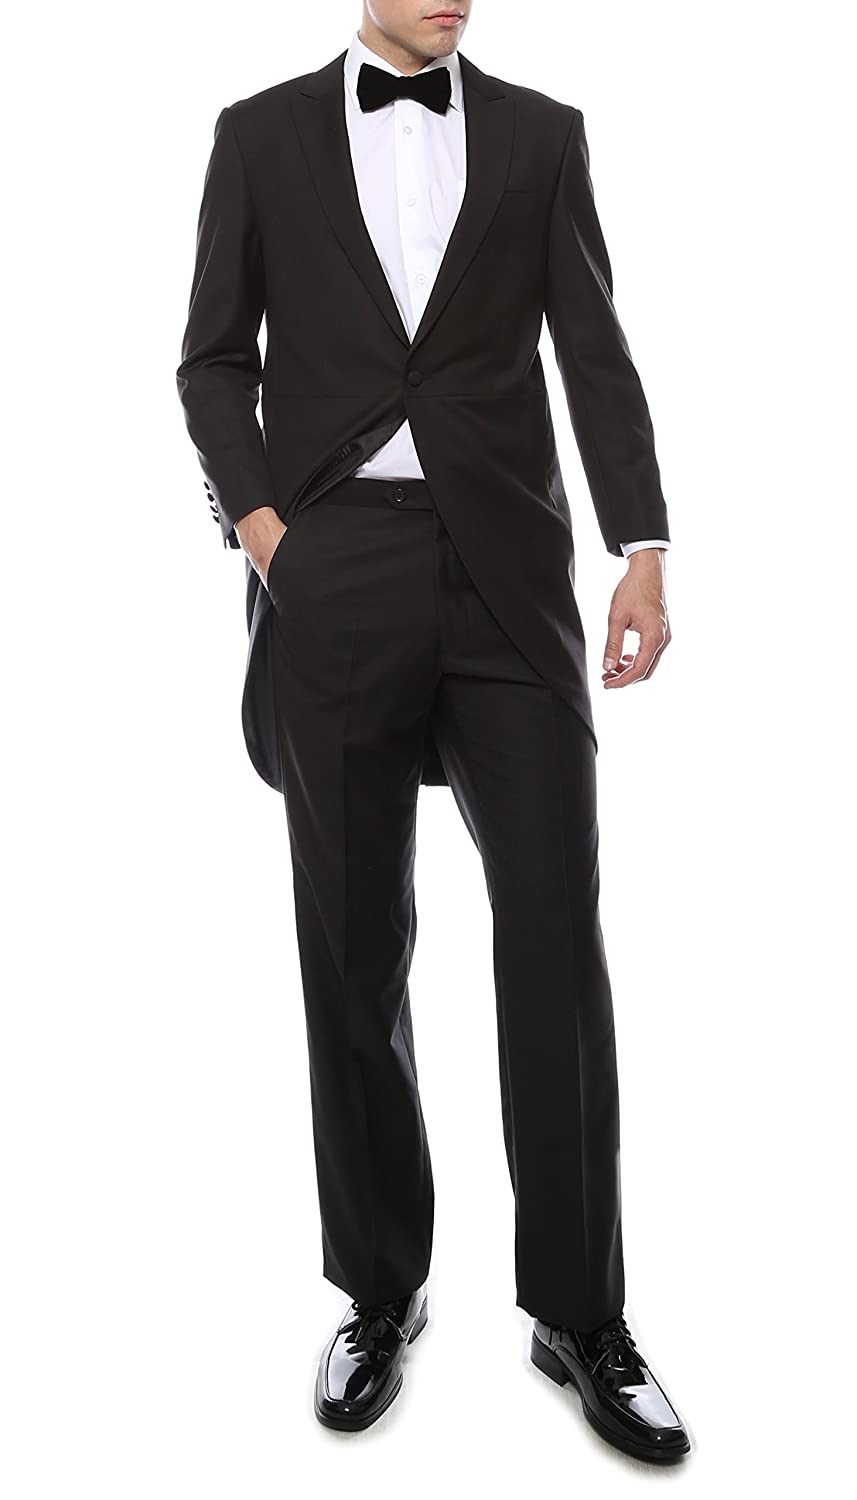 Men's Vintage Style Suits, Classic Suits Victorian Tail Tuxedo  AT vintagedancer.com